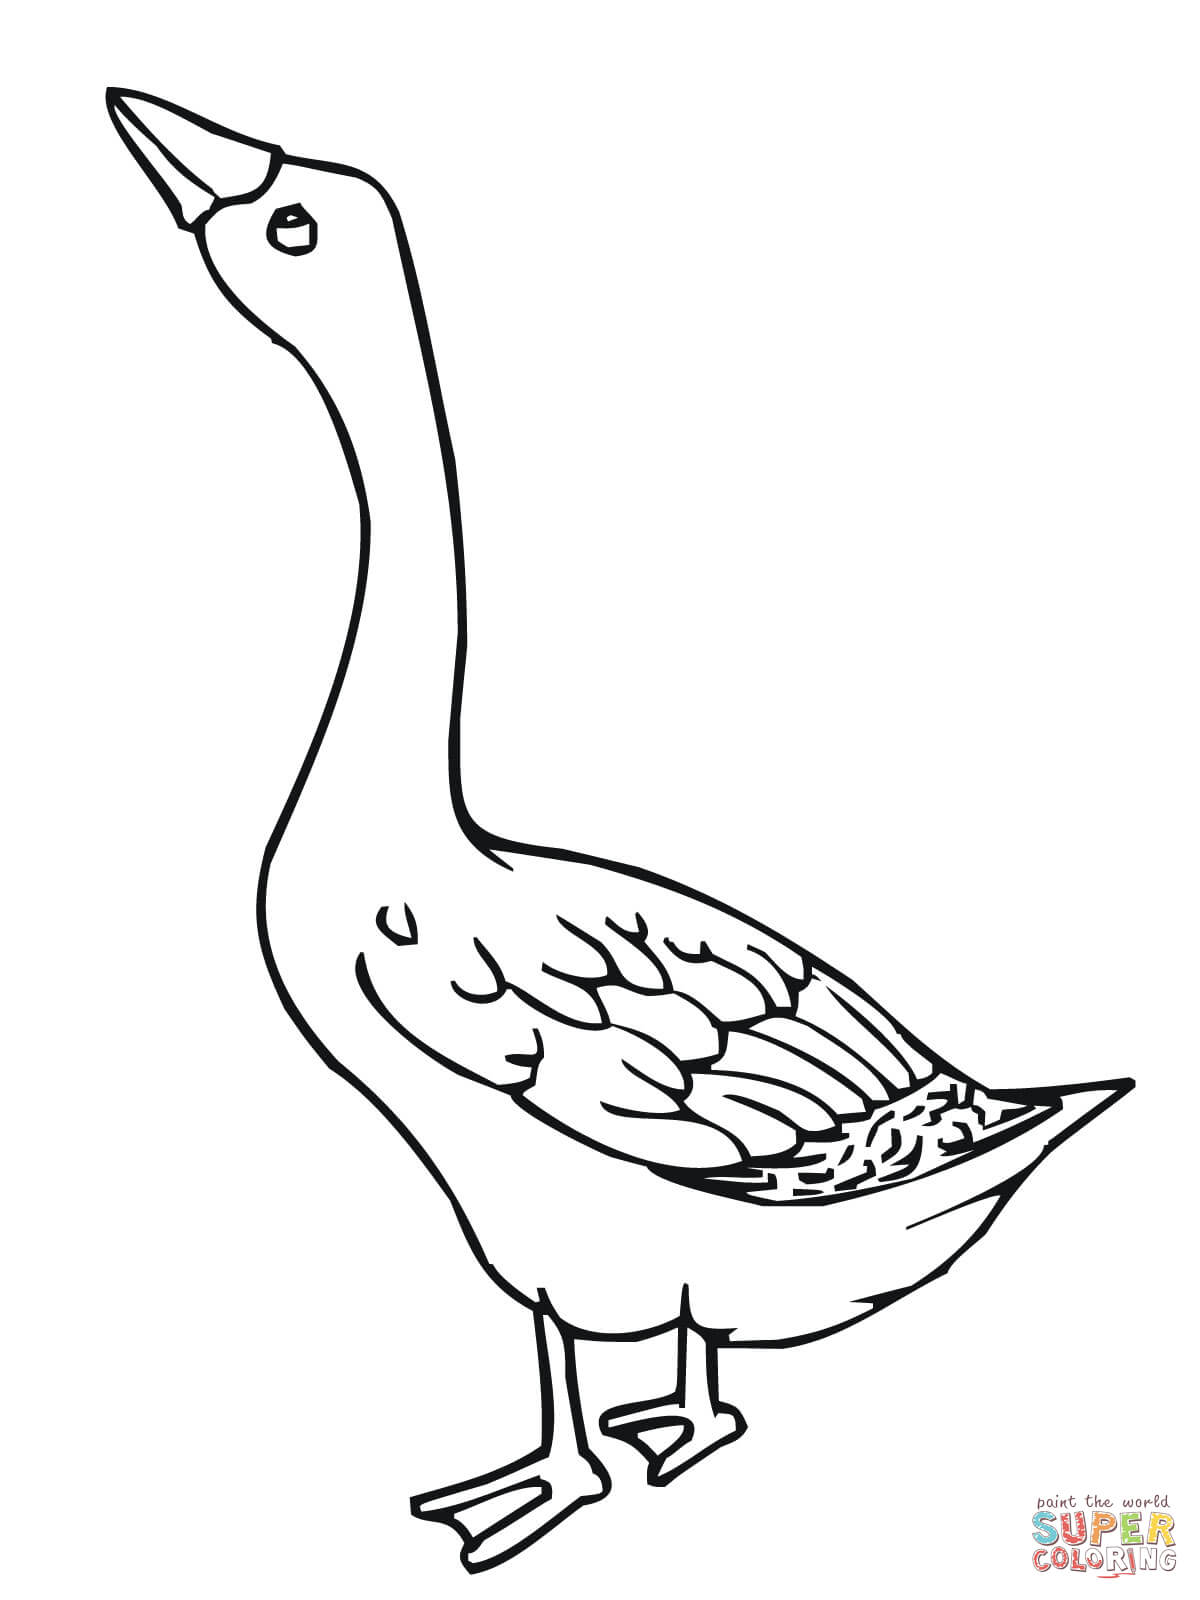 geese coloring pages for kids - photo#9